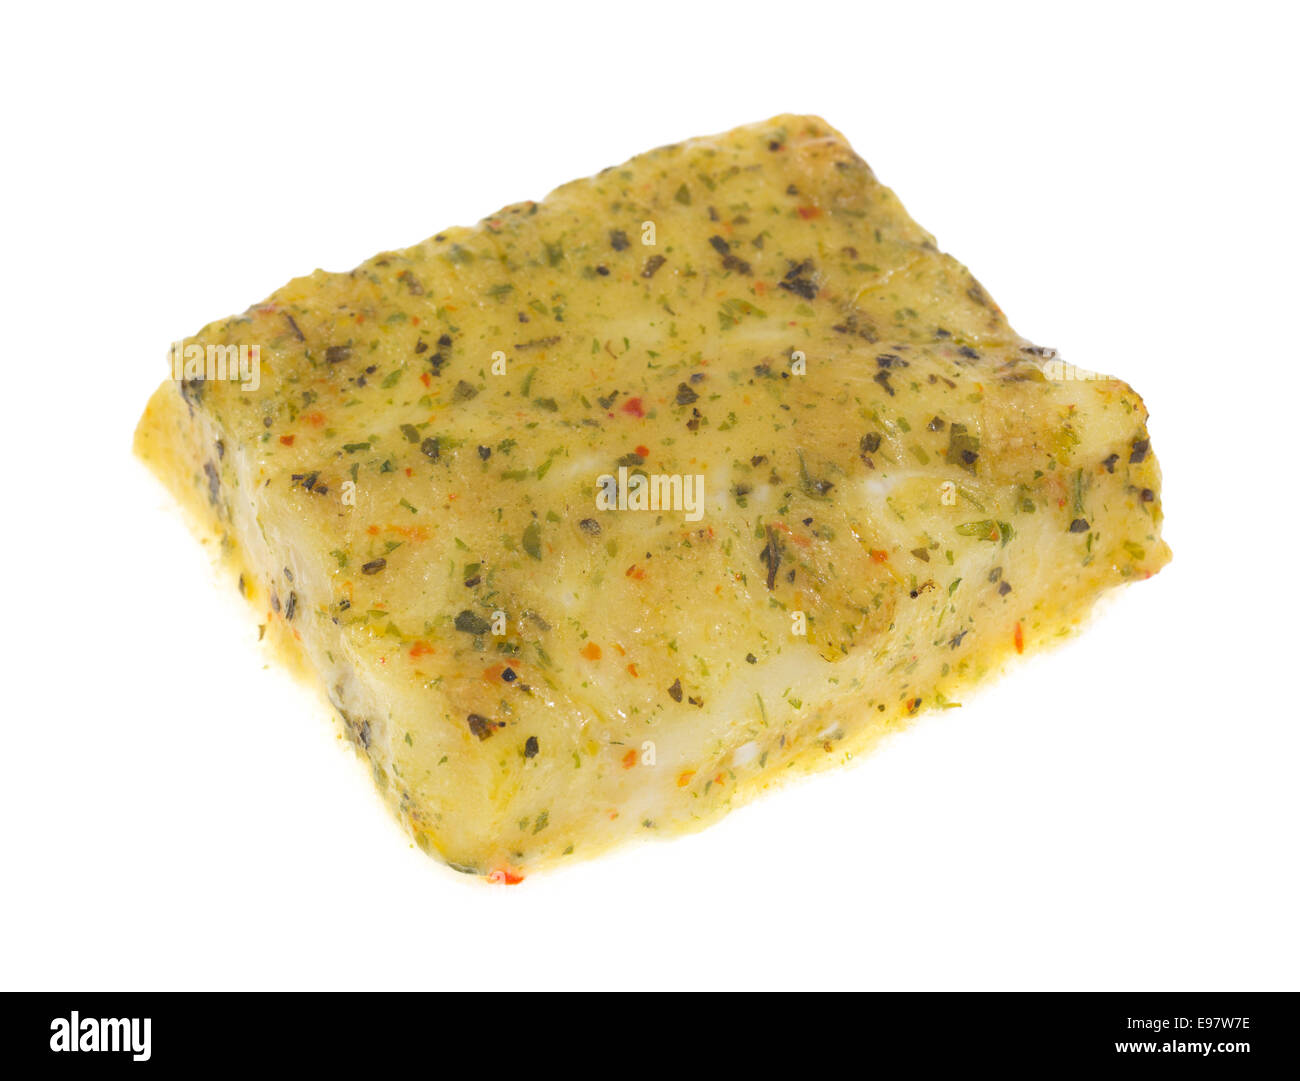 A fillet of pollack with herbs on a white background. - Stock Image